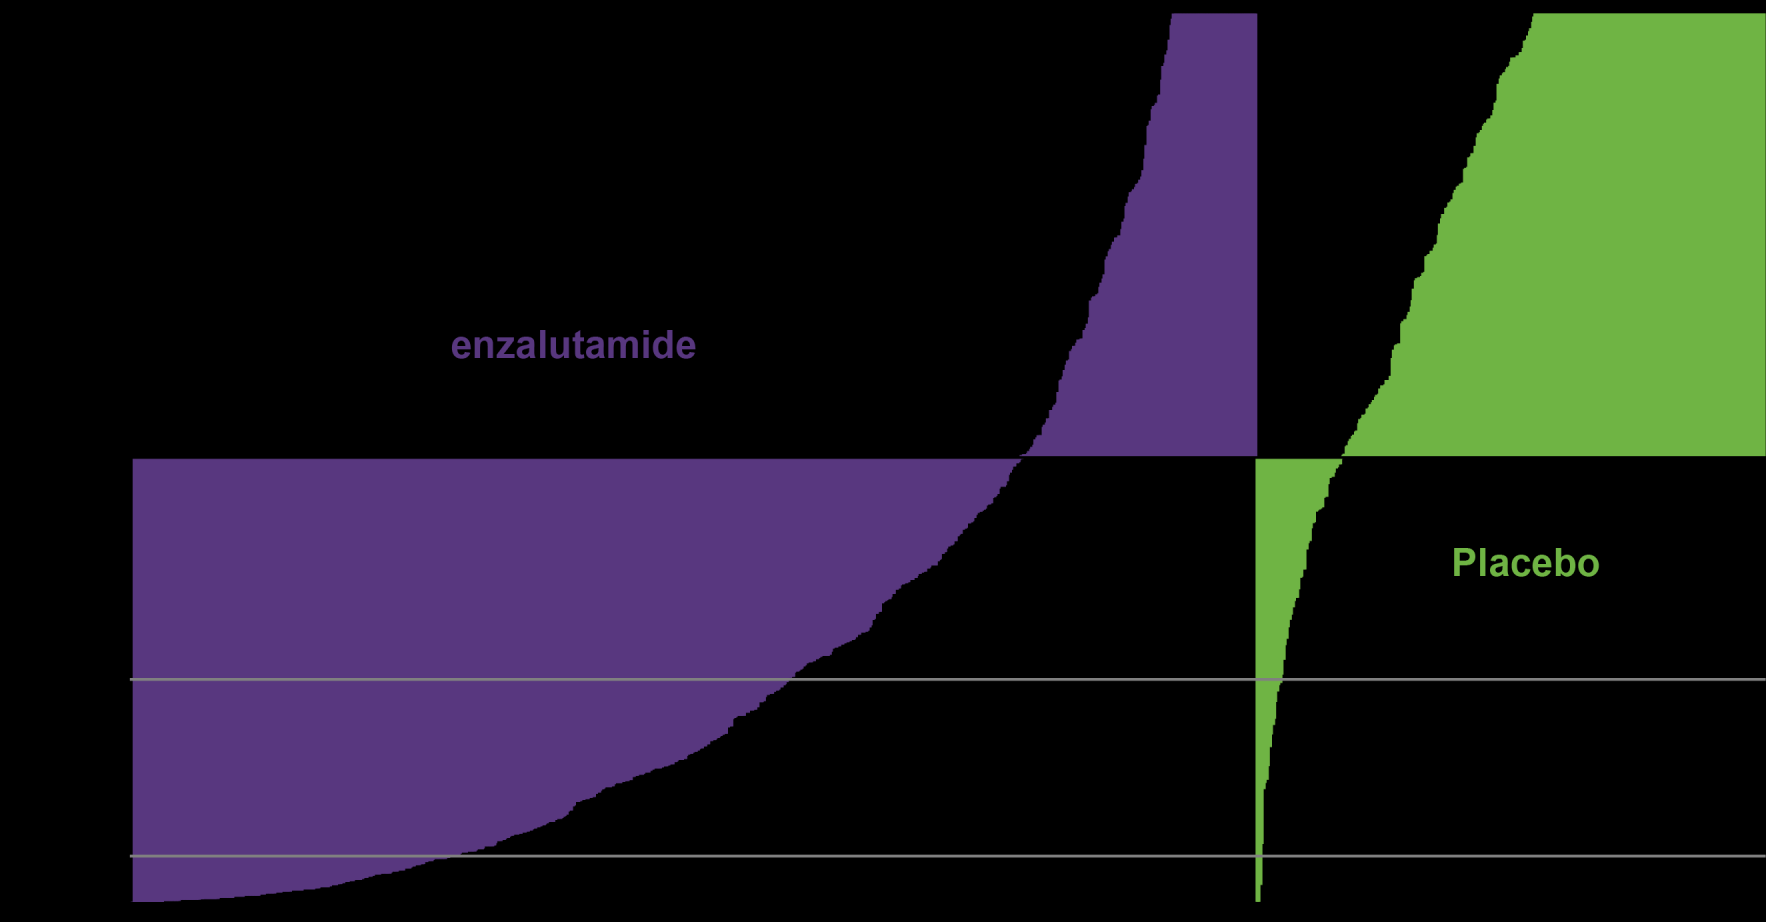 Enzalutamide had a high PSA Response Rate >50% confirmed PSA fall: Enza 54% ; Placebo 2% (p<0.